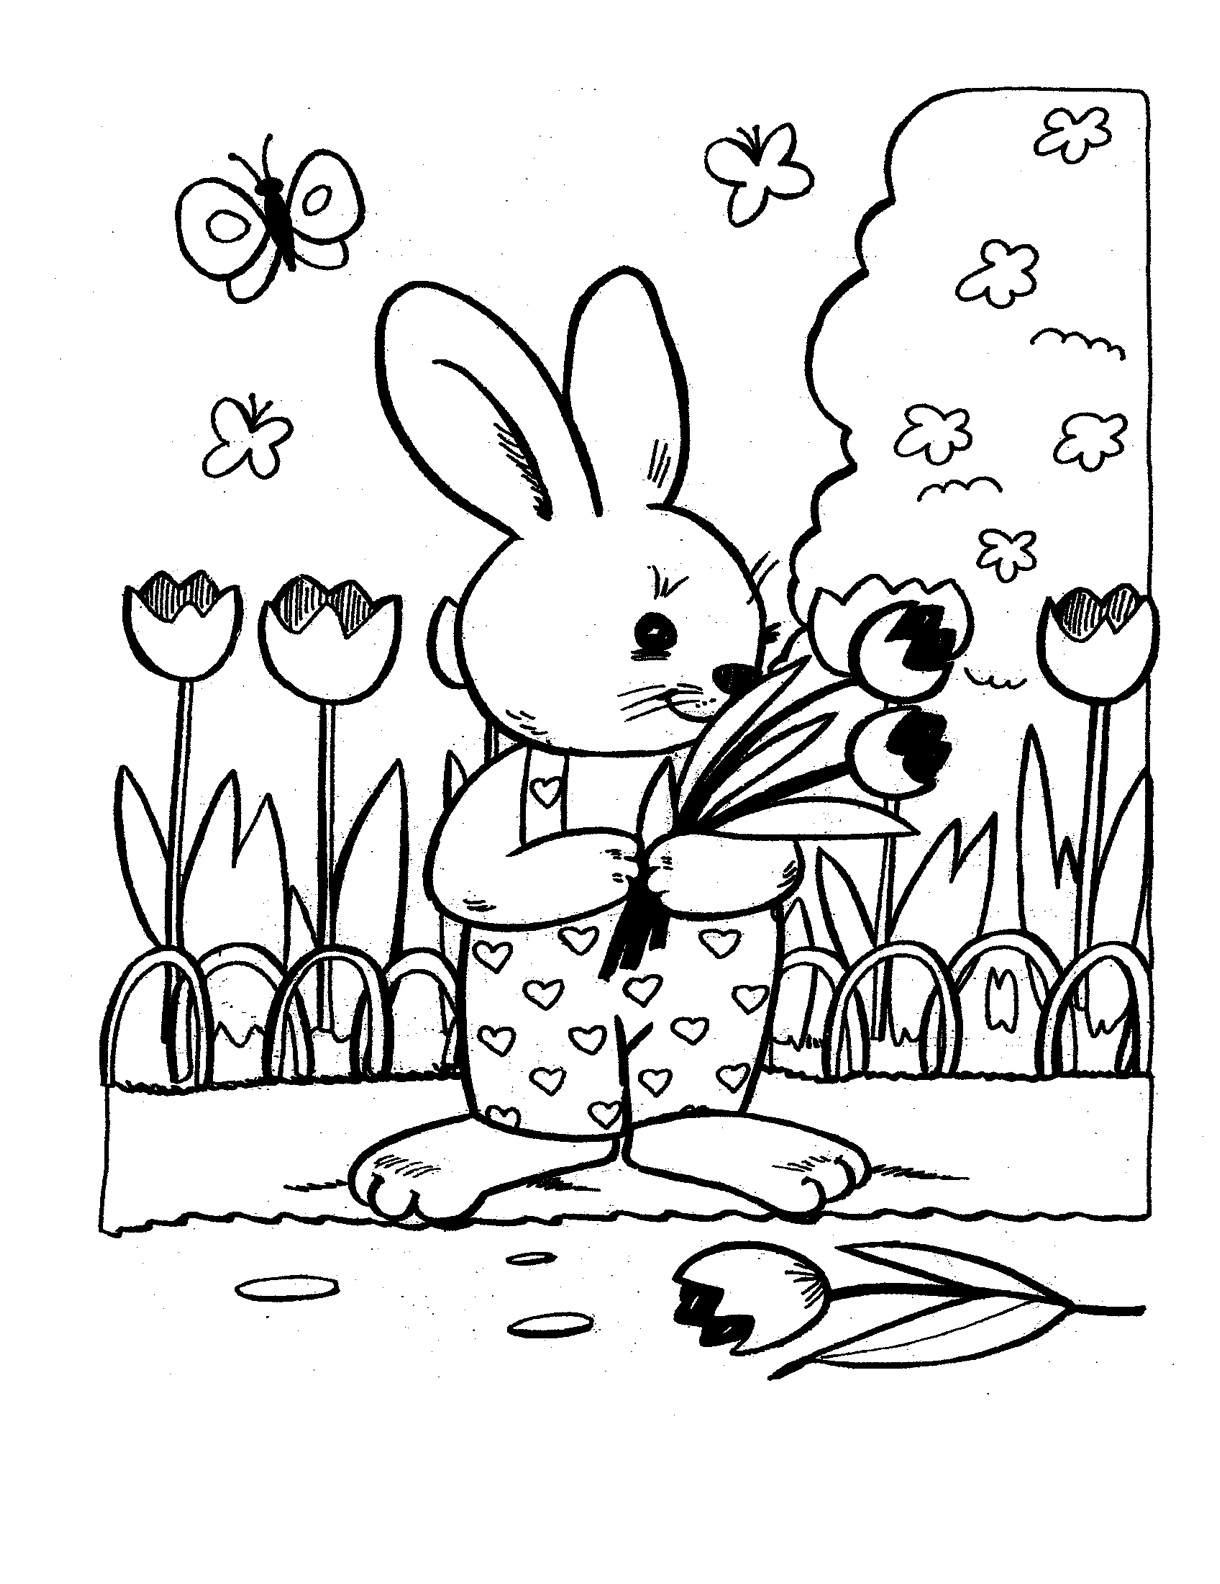 Easter Coloring Contest for Kids, Ages 3-10!